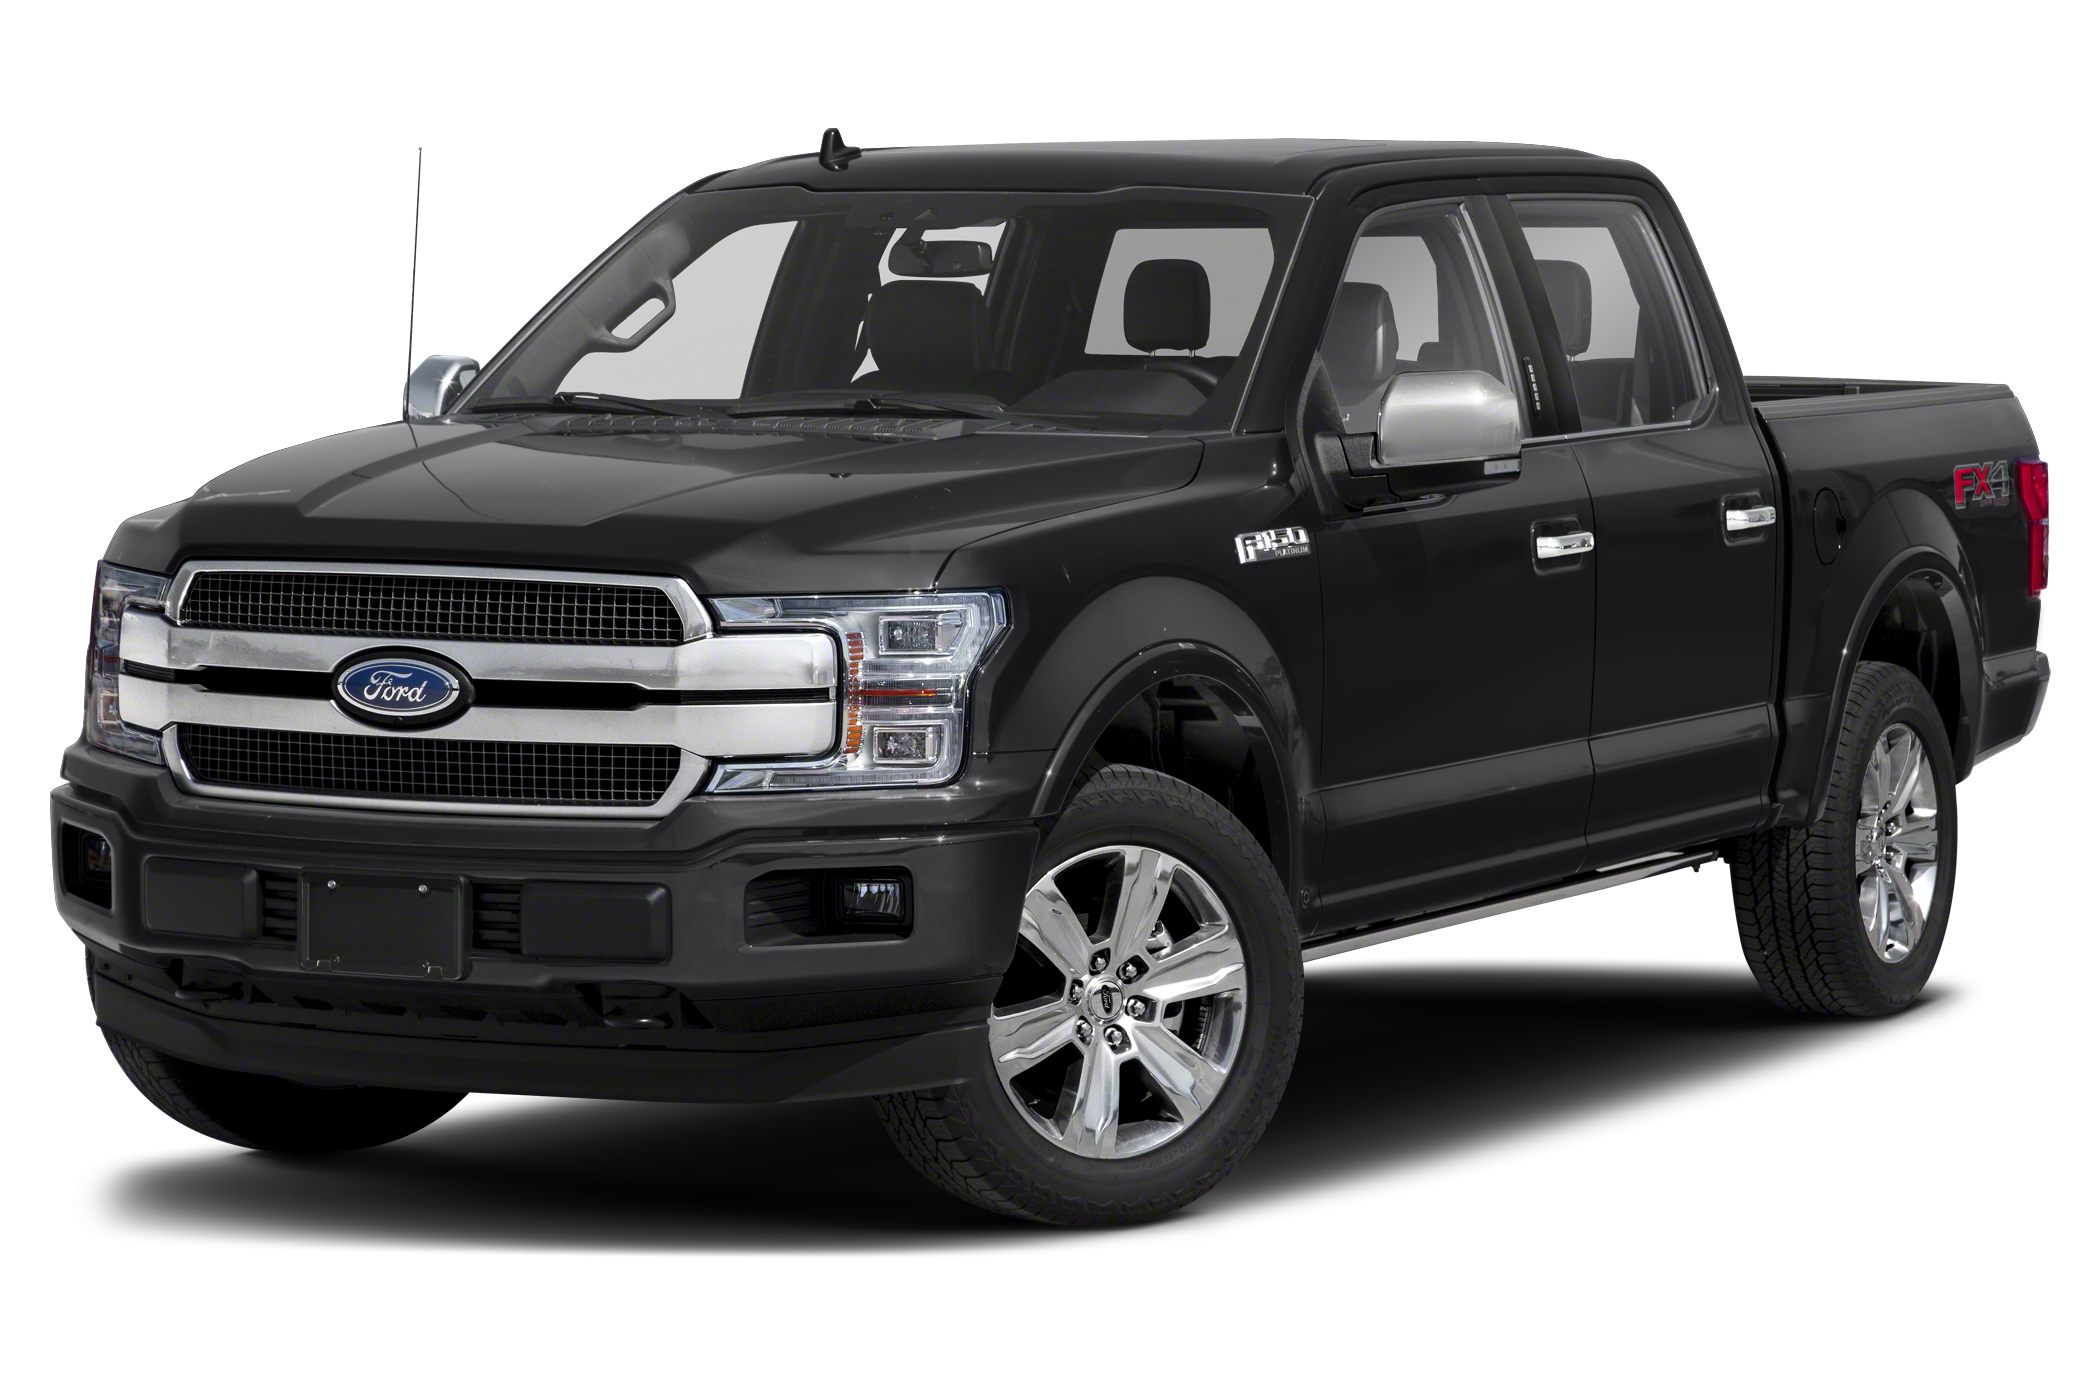 2020 Ford F-150 Platinum 4x4 SuperCrew Cab Styleside 5.5 ft. box 145 in. WB